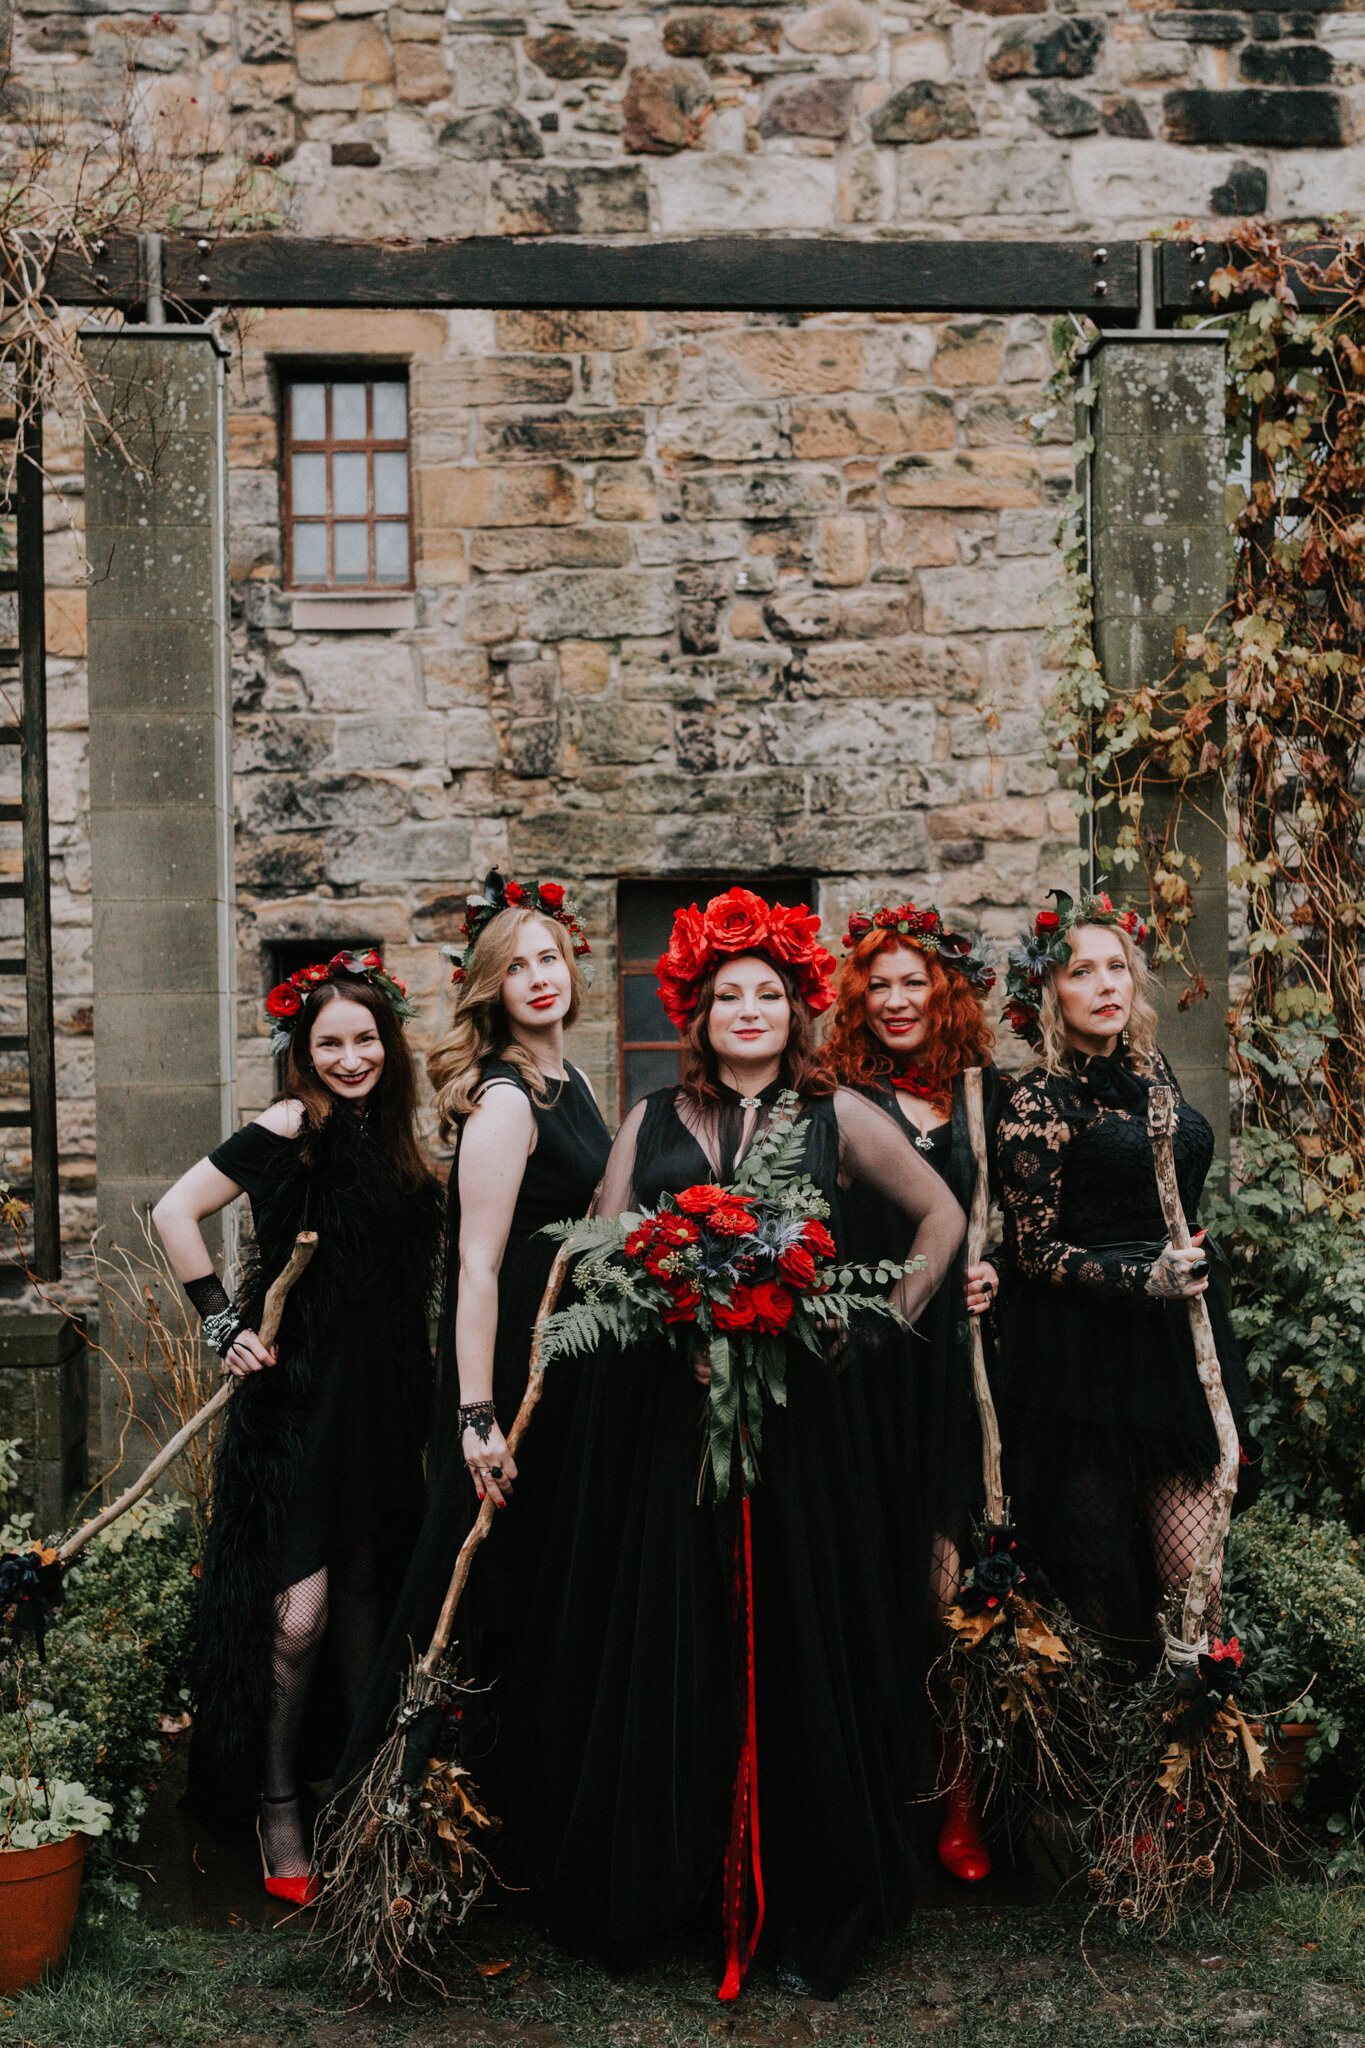 The alternative halloween quirky bridal party in black dresses